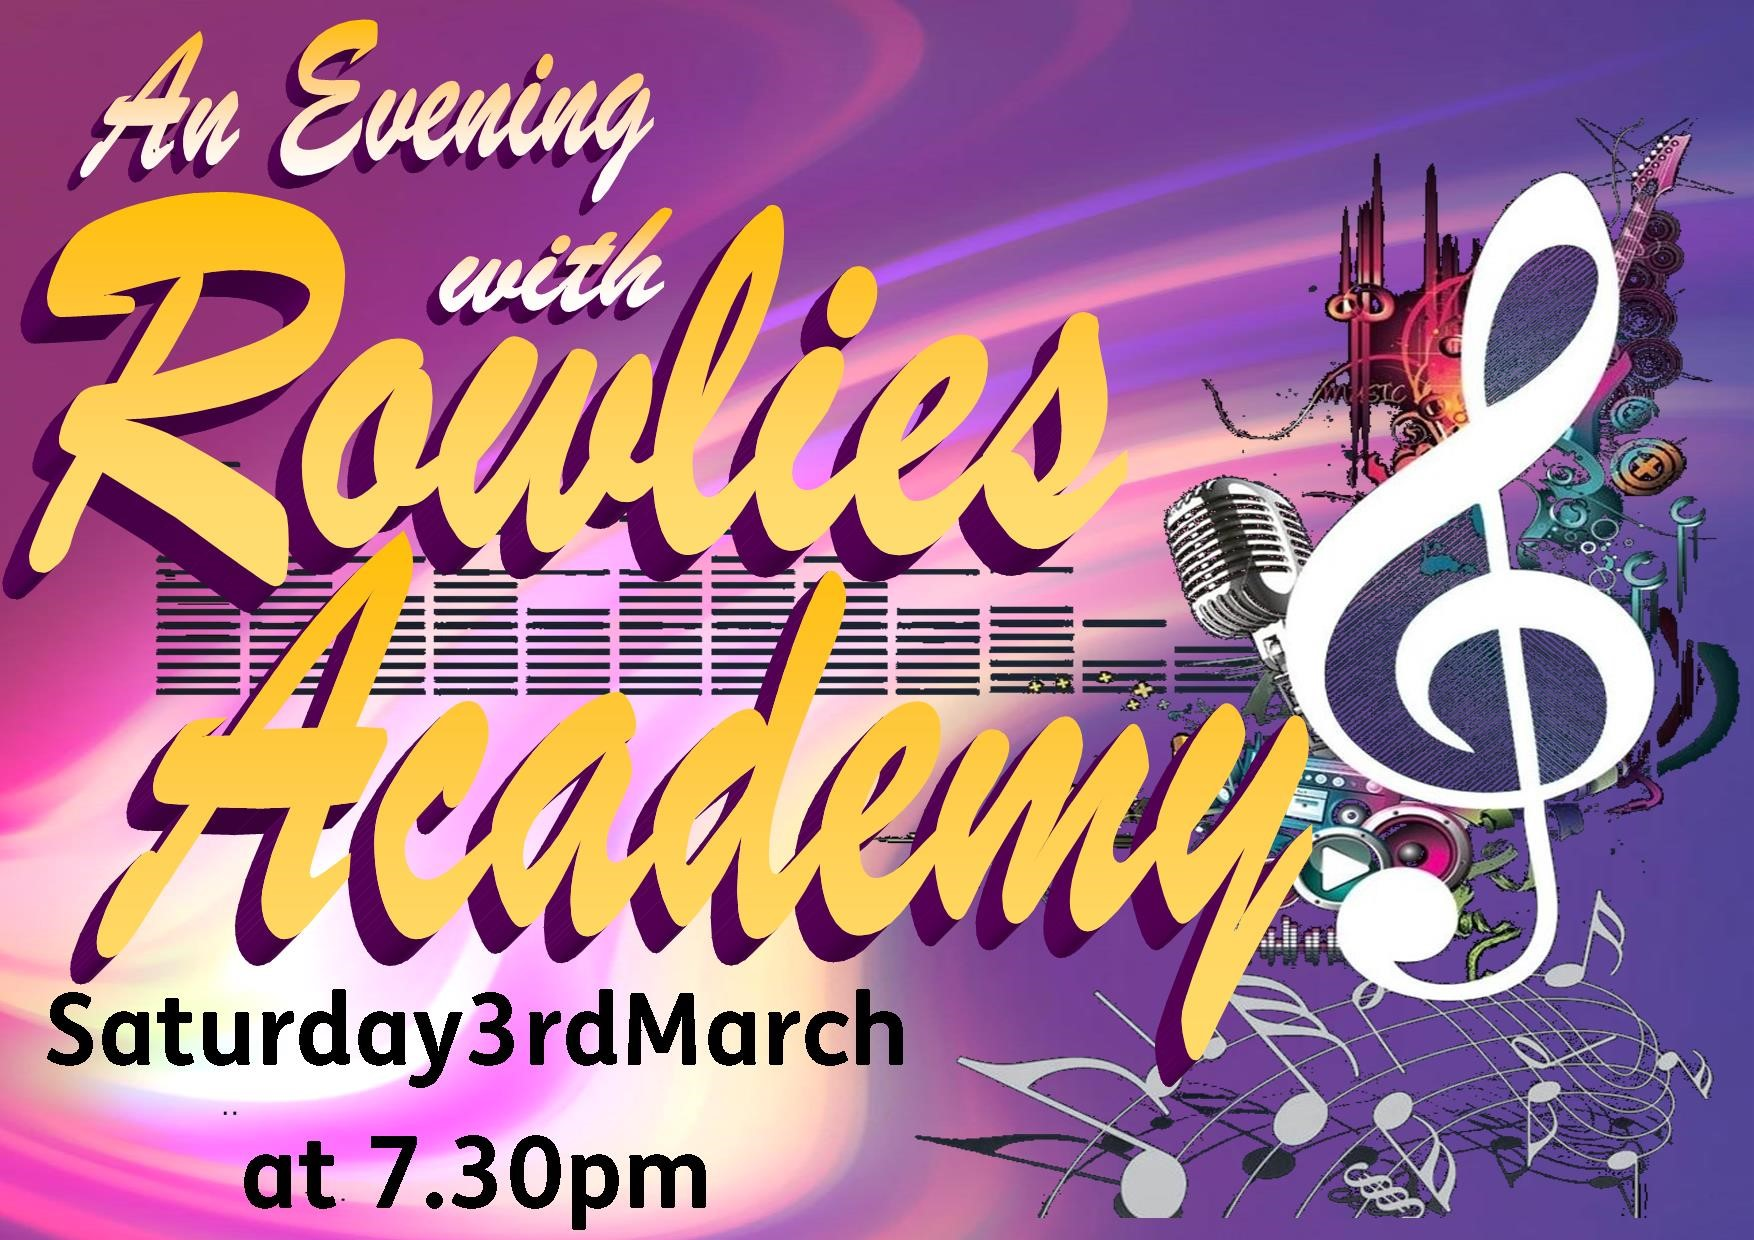 An Evening with Rowlies Academy